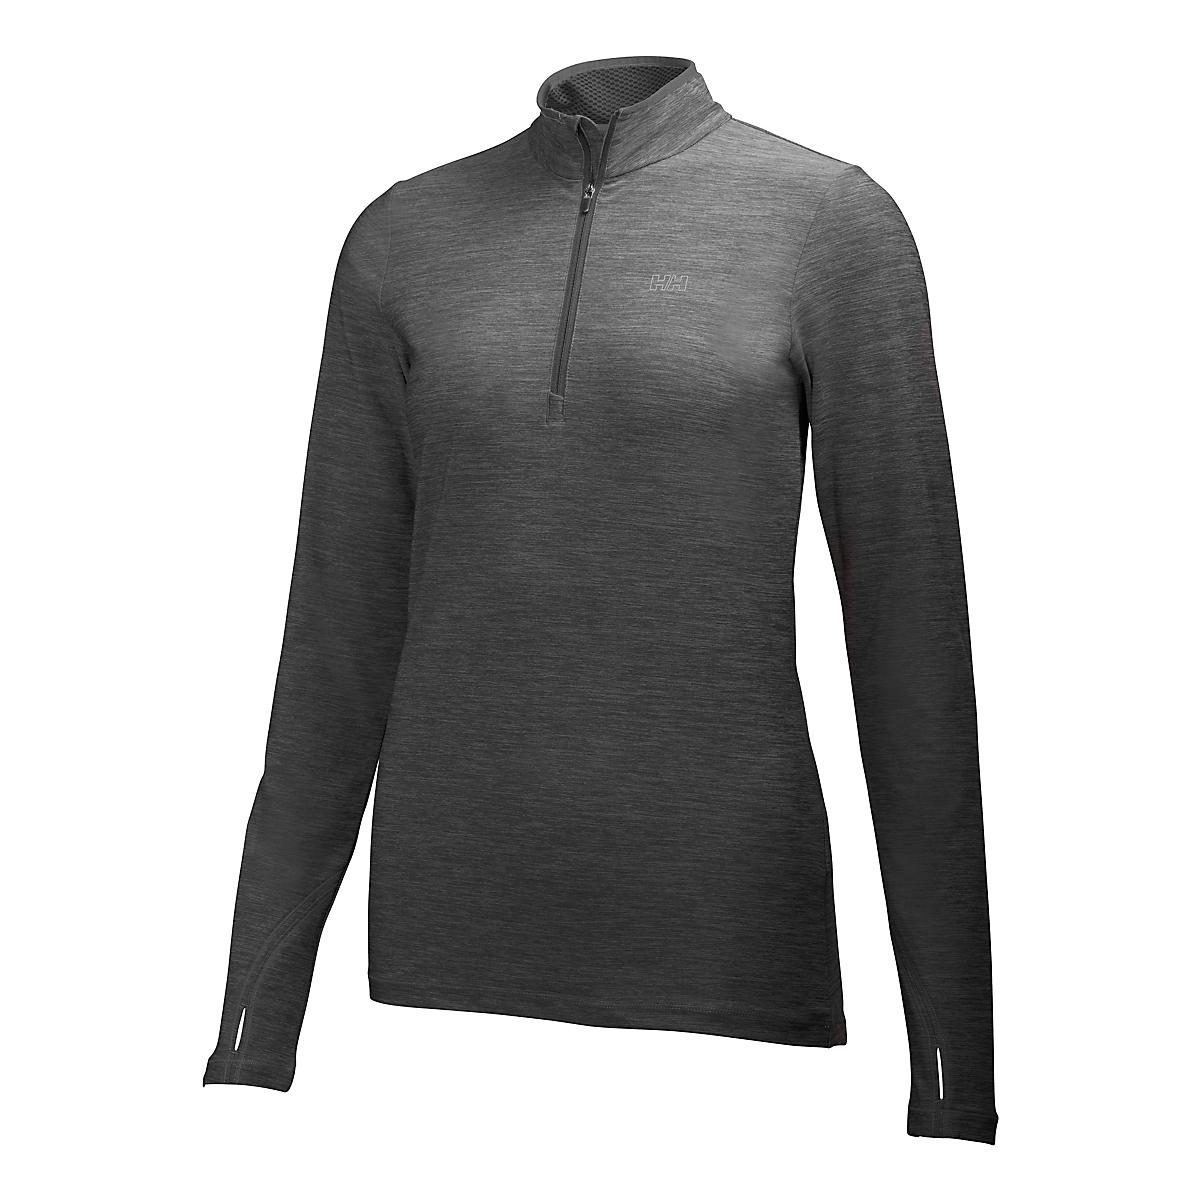 Women's Helly Hansen�Aspire Flex 1/2 Zip